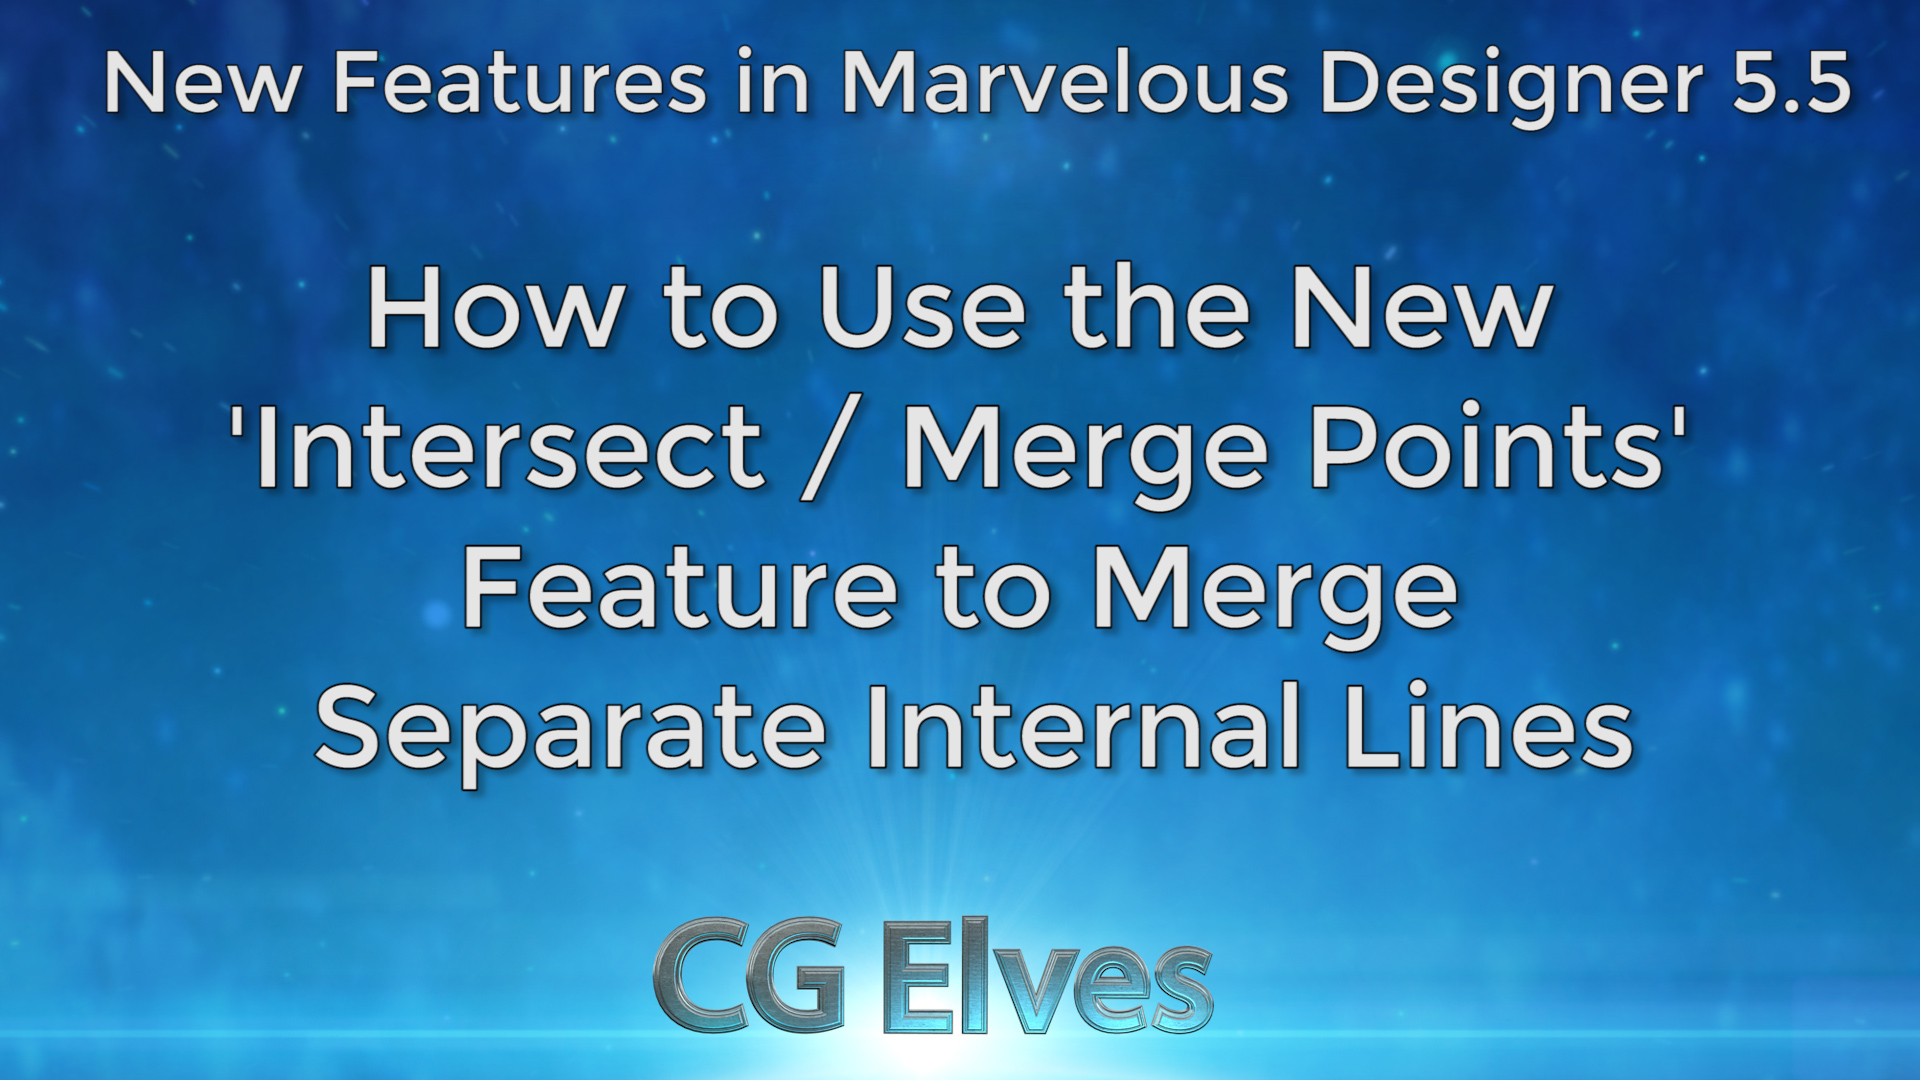 Marvelous Designer 5.5 New Features Merge Internal Lines